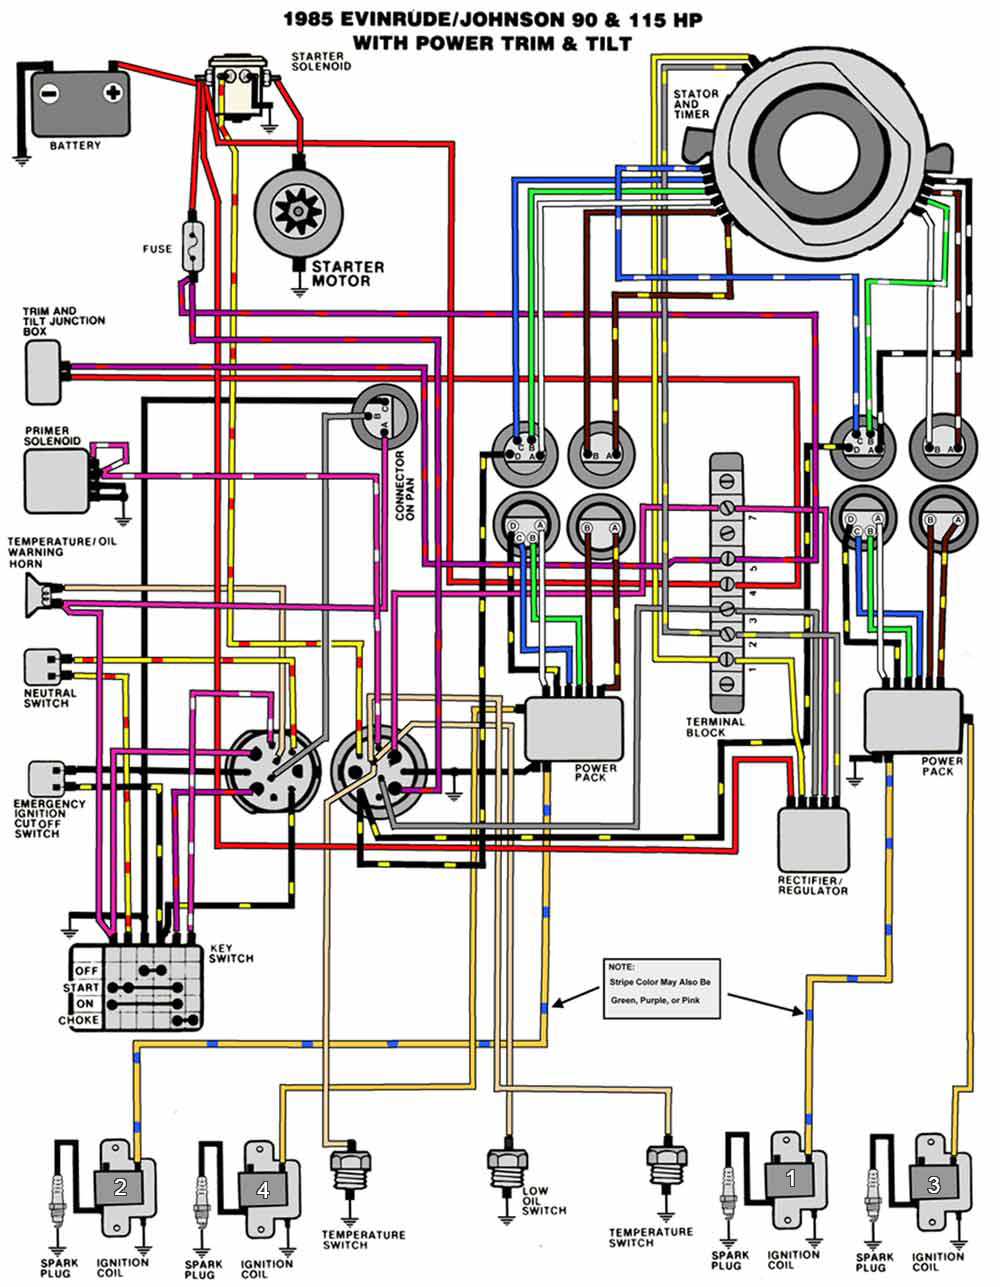 1985_90_115TnT mastertech marine evinrude johnson outboard wiring diagrams Boat Ignition Switch Wiring Diagram at highcare.asia